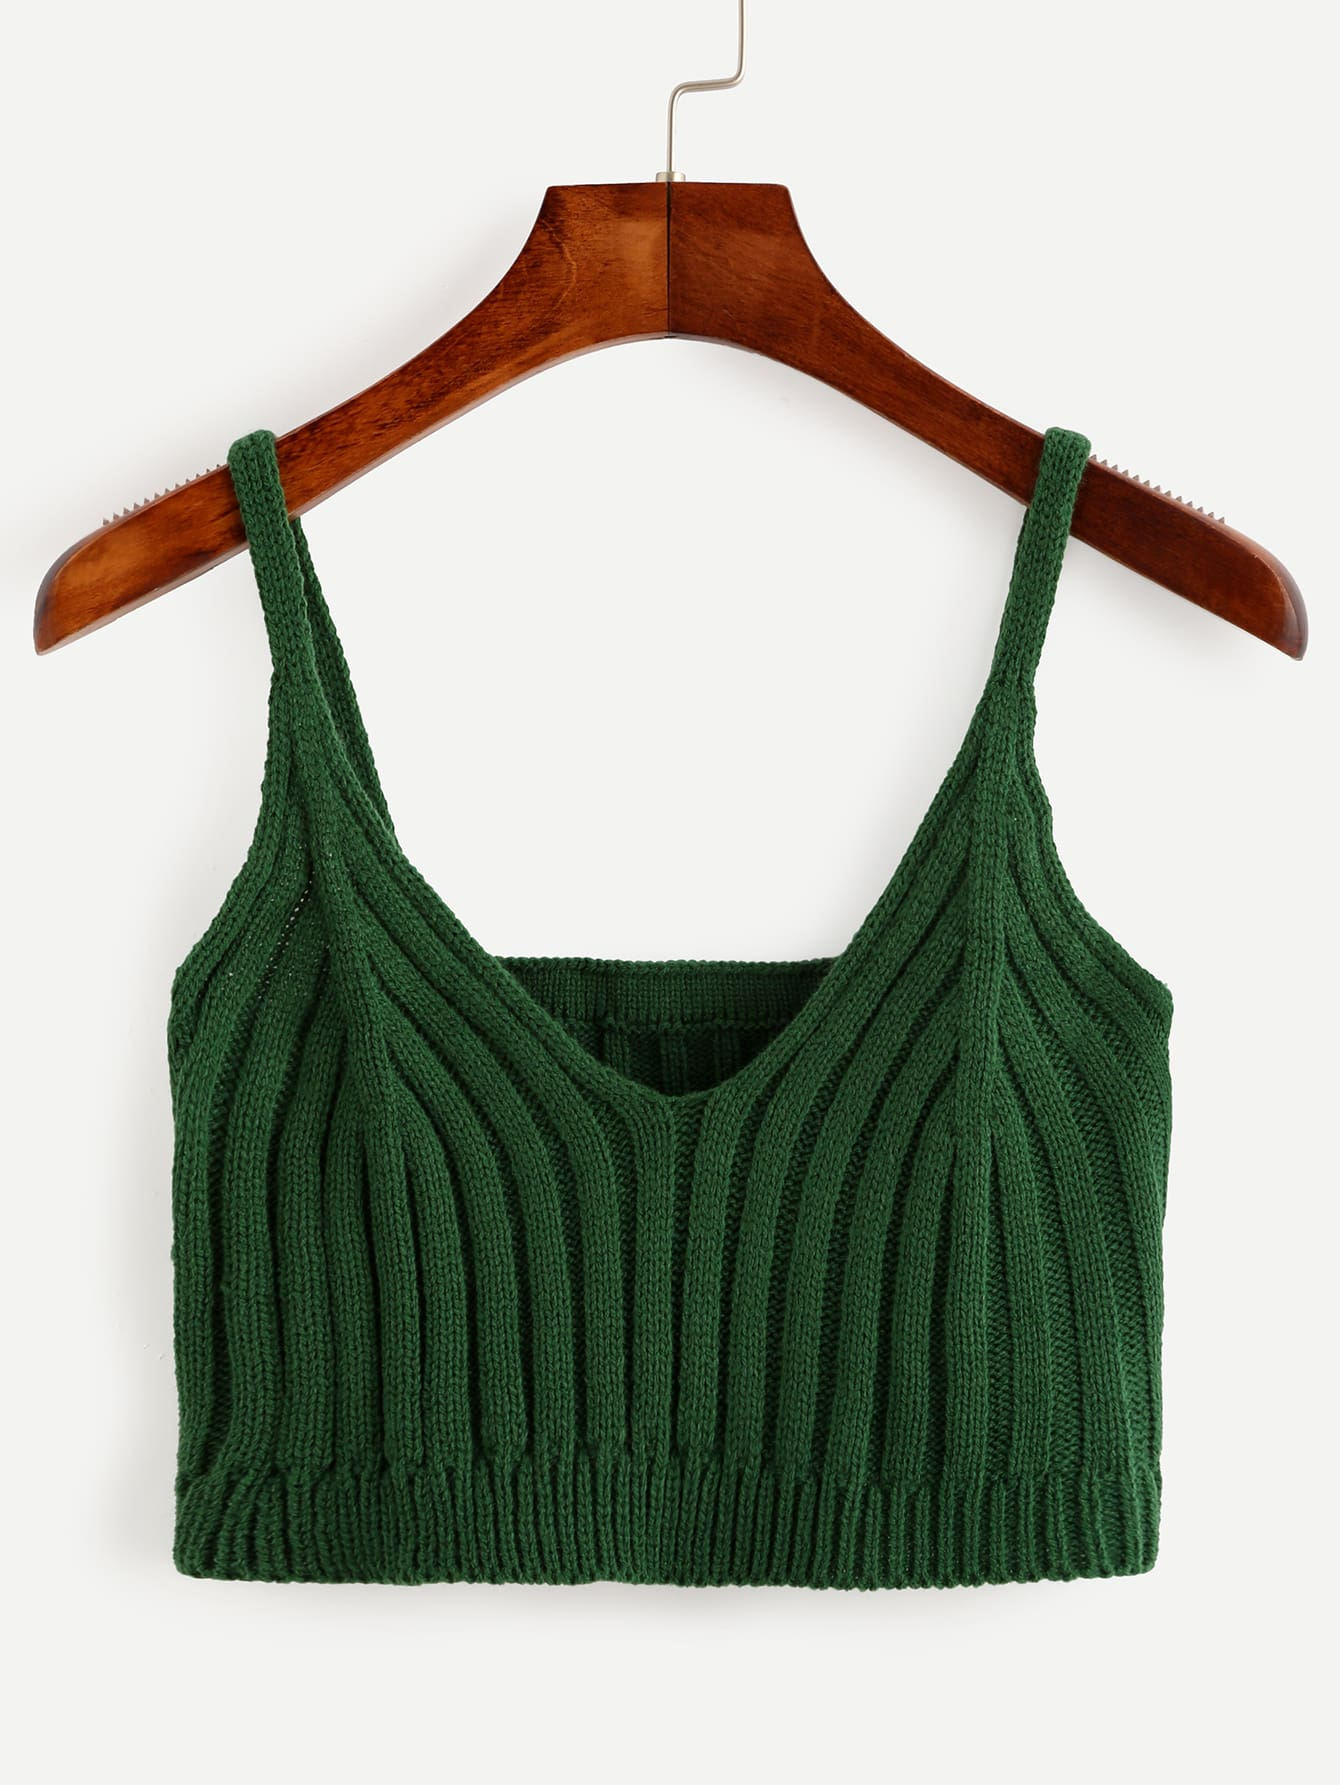 Green Ribbed Knit Crop Cami Top vest160728102